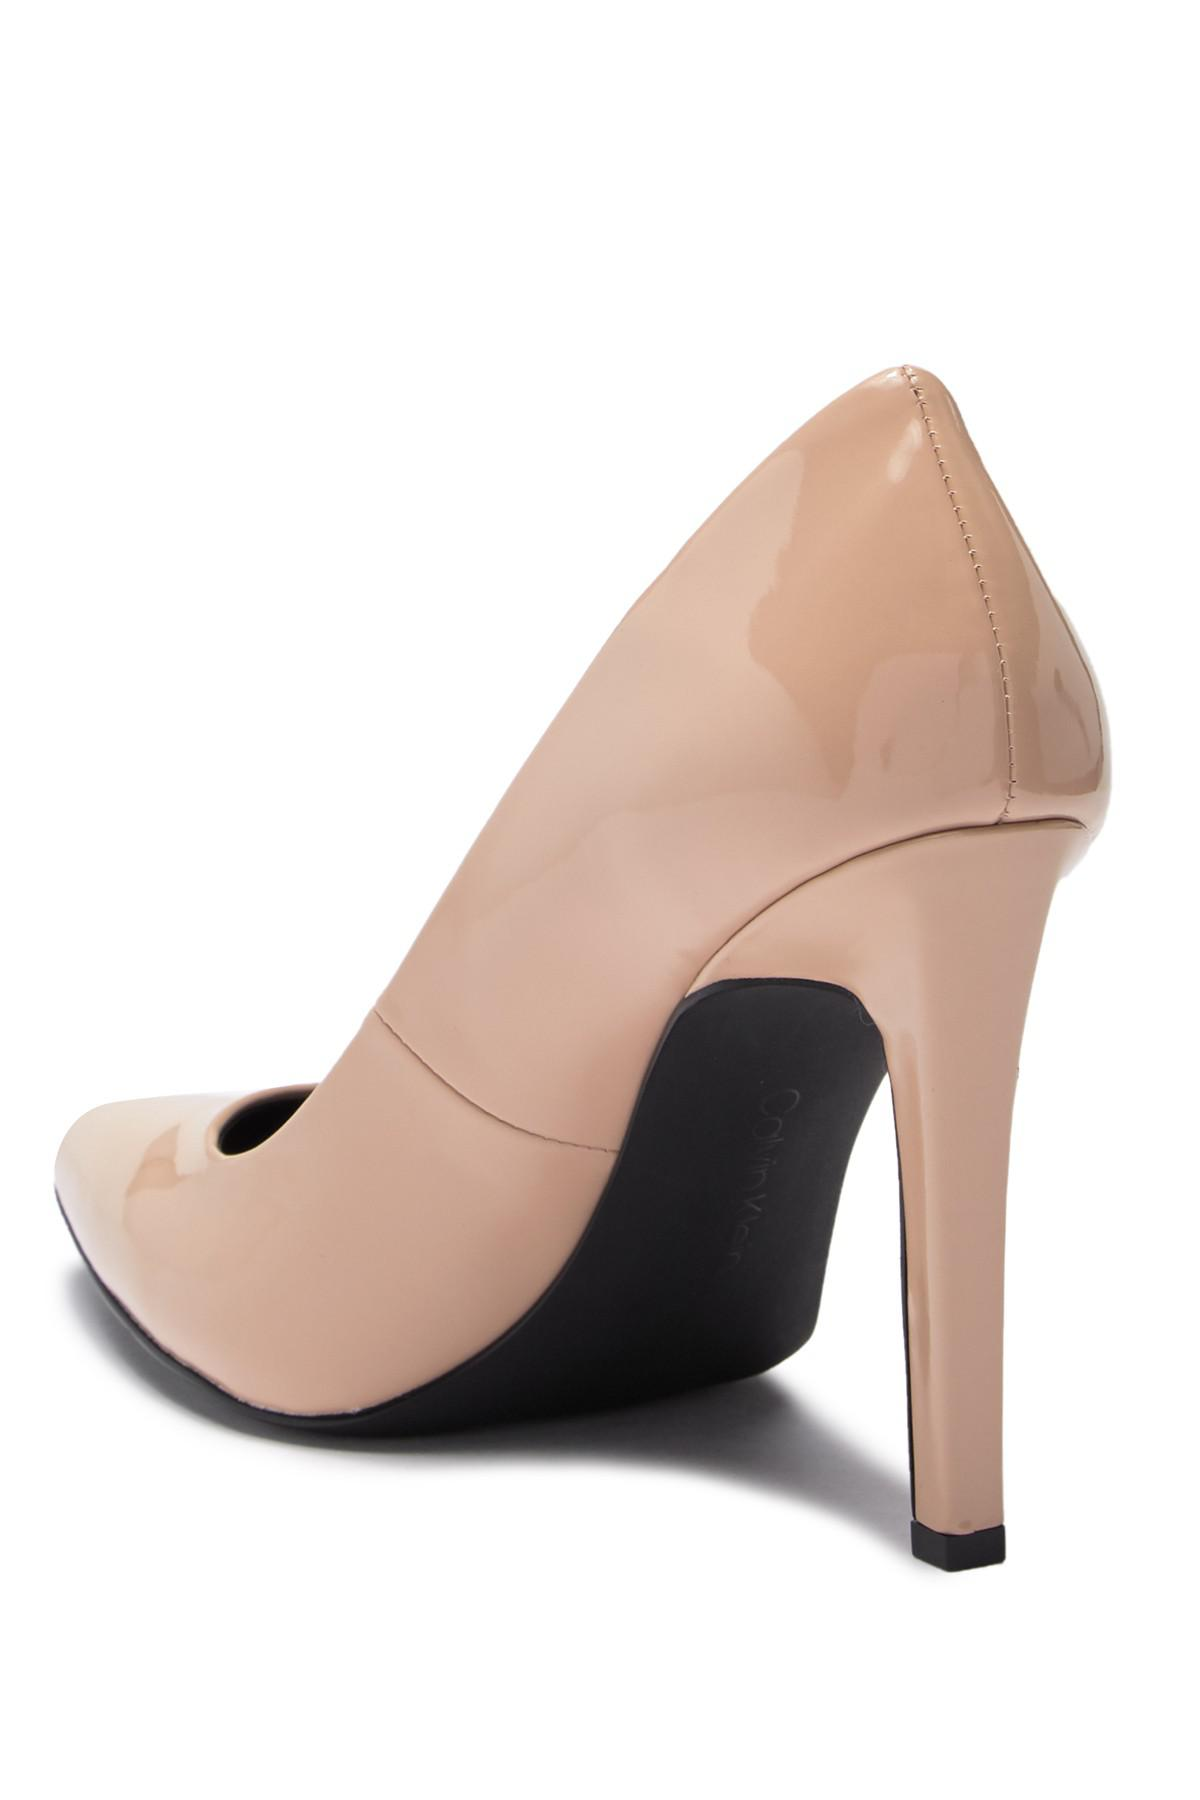 9b604747c76 Calvin Klein - Multicolor Brady Patent Leather Pointed-toe Pump - Lyst.  View fullscreen